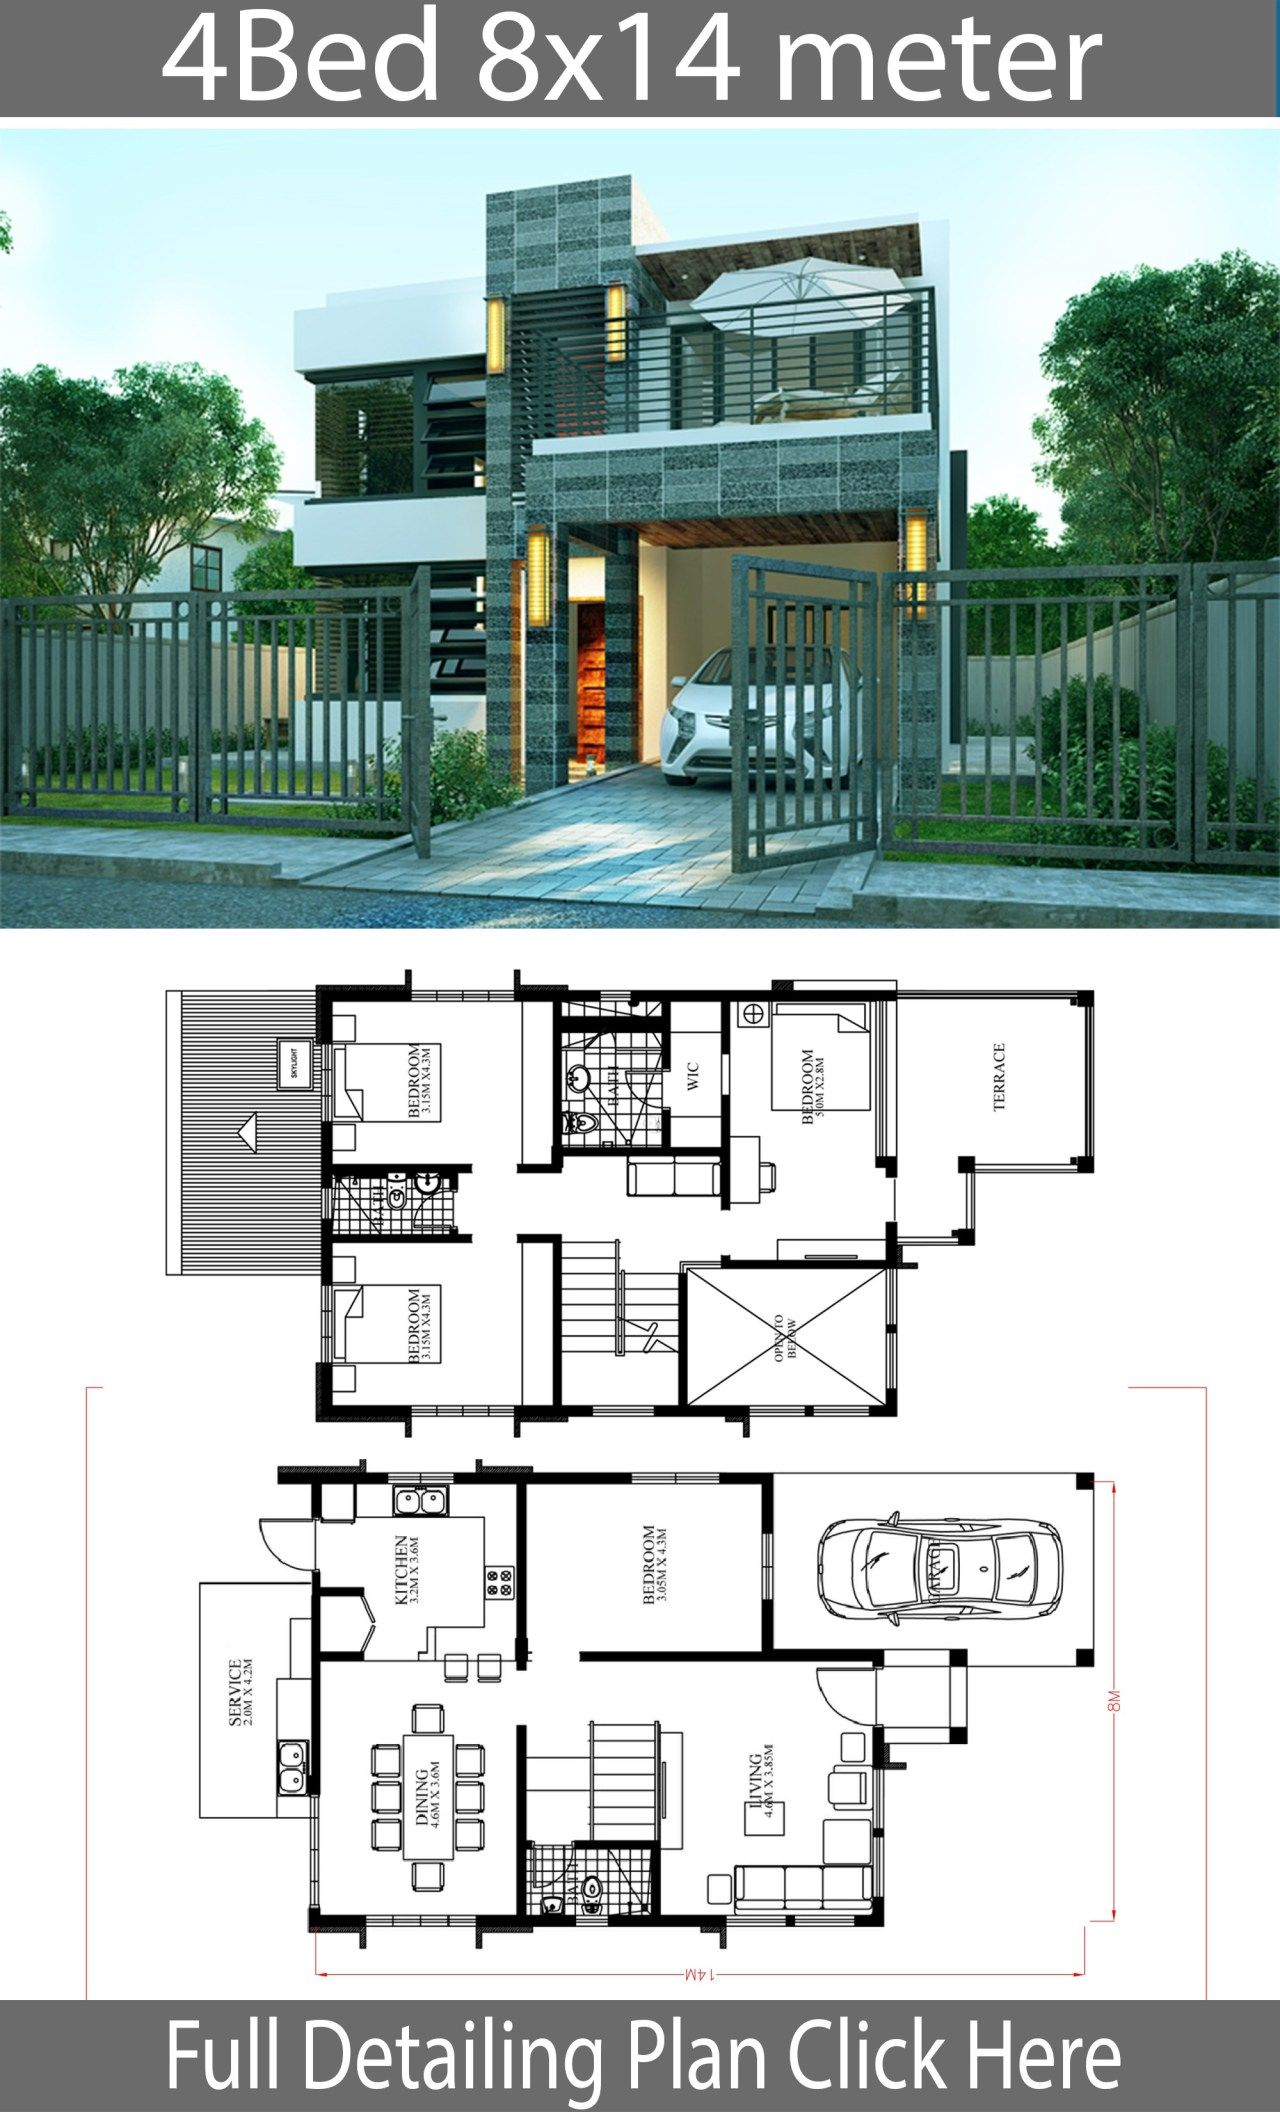 Home Design Plan 8x14m With 4 Bedrooms Home Ideas Home Design Plan House Layout Plans Modern House Plans